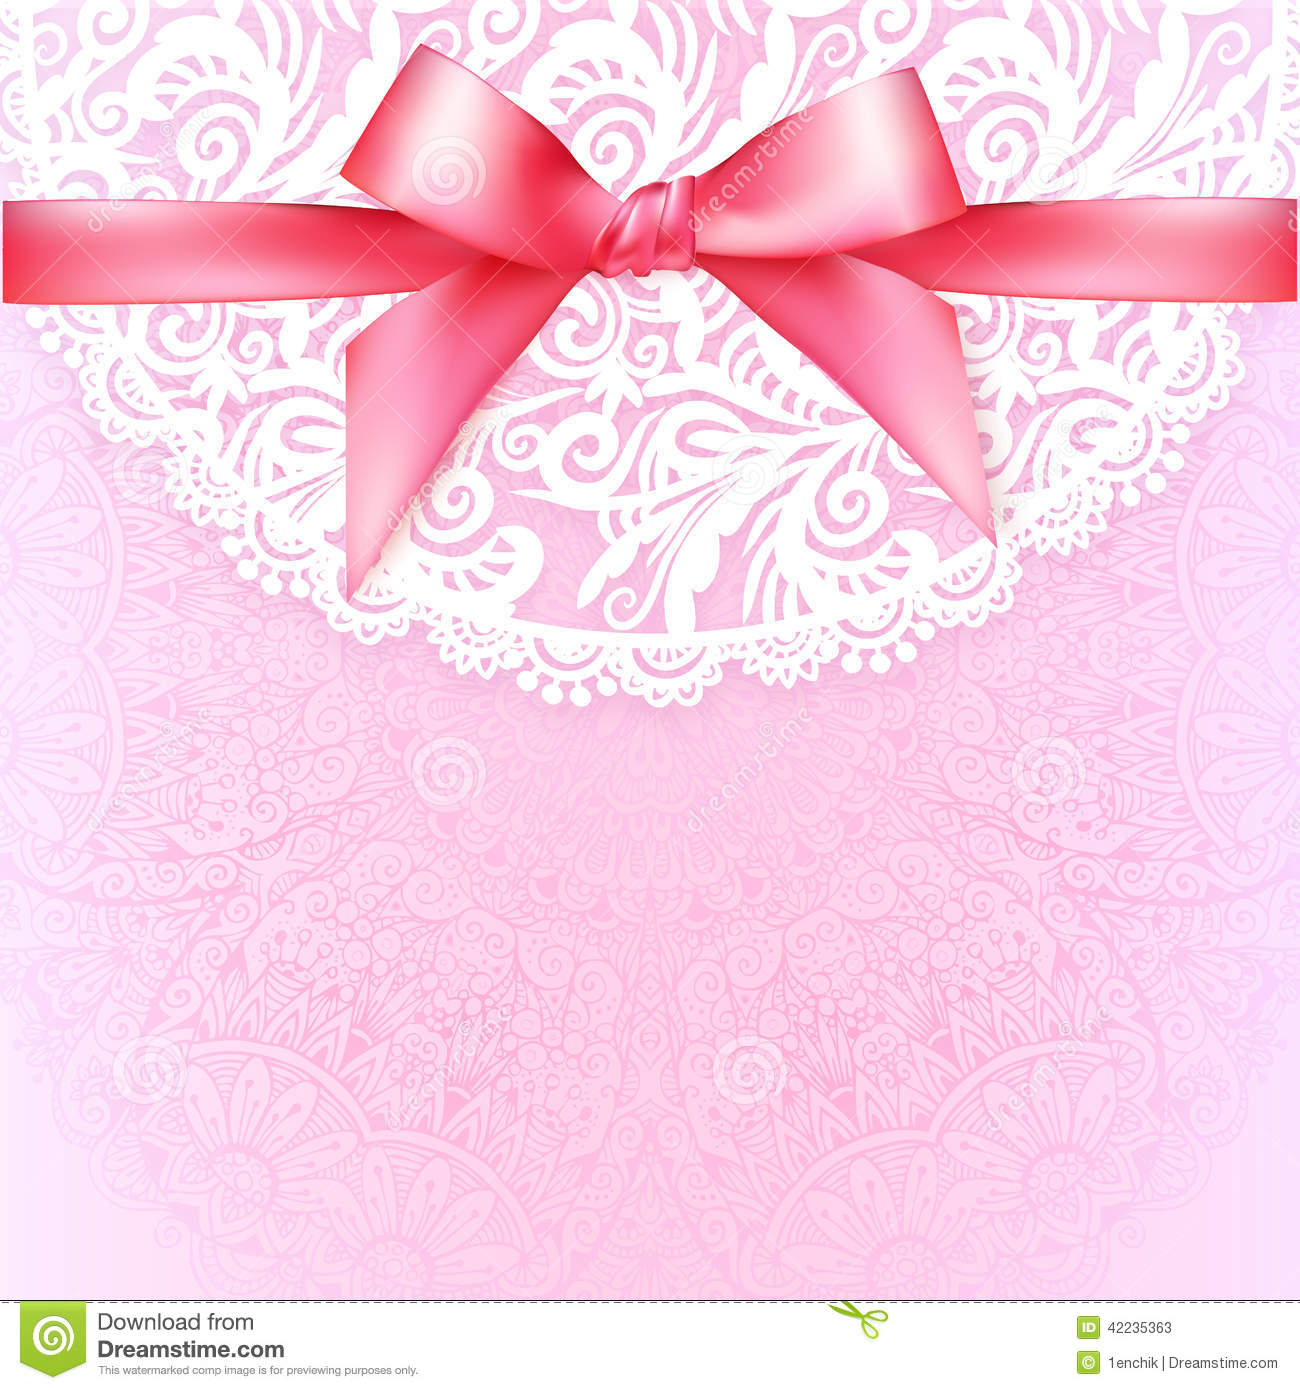 Pink Lacy Vintage Wedding Greeting Card Template Stock Vector - Image ...